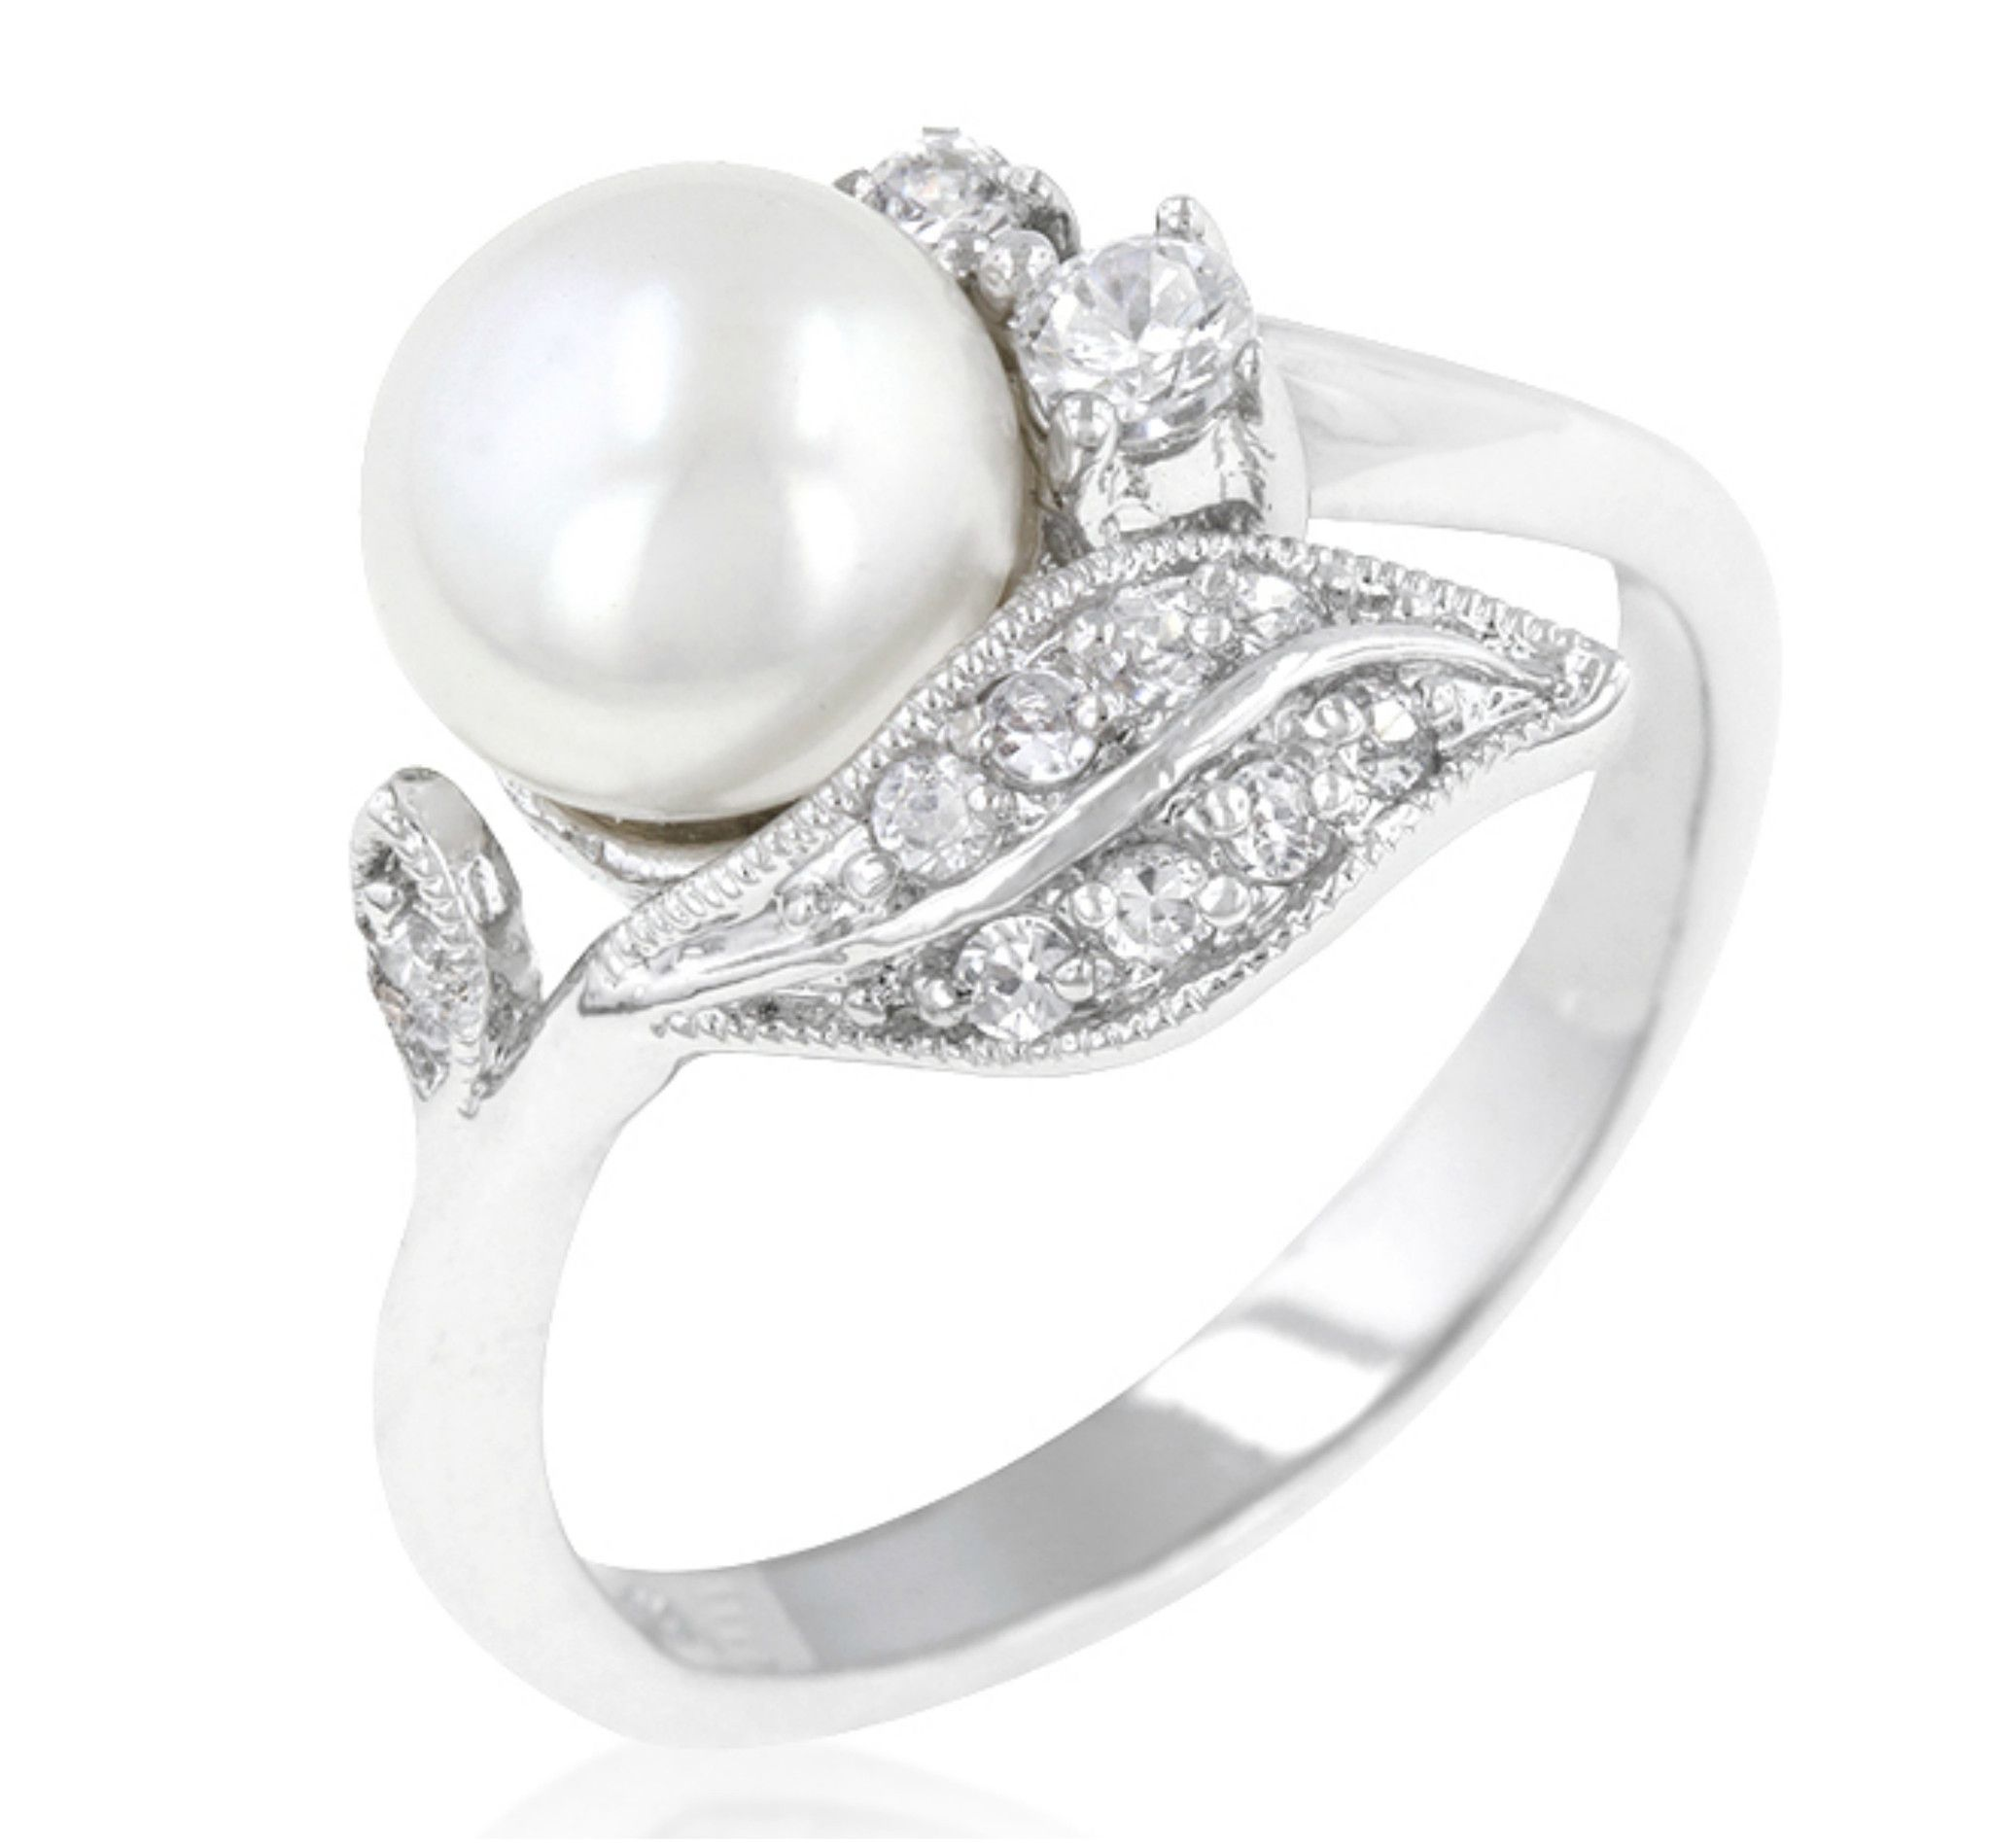 pin wedding silver pearl engagement sterling freshwater ring rings